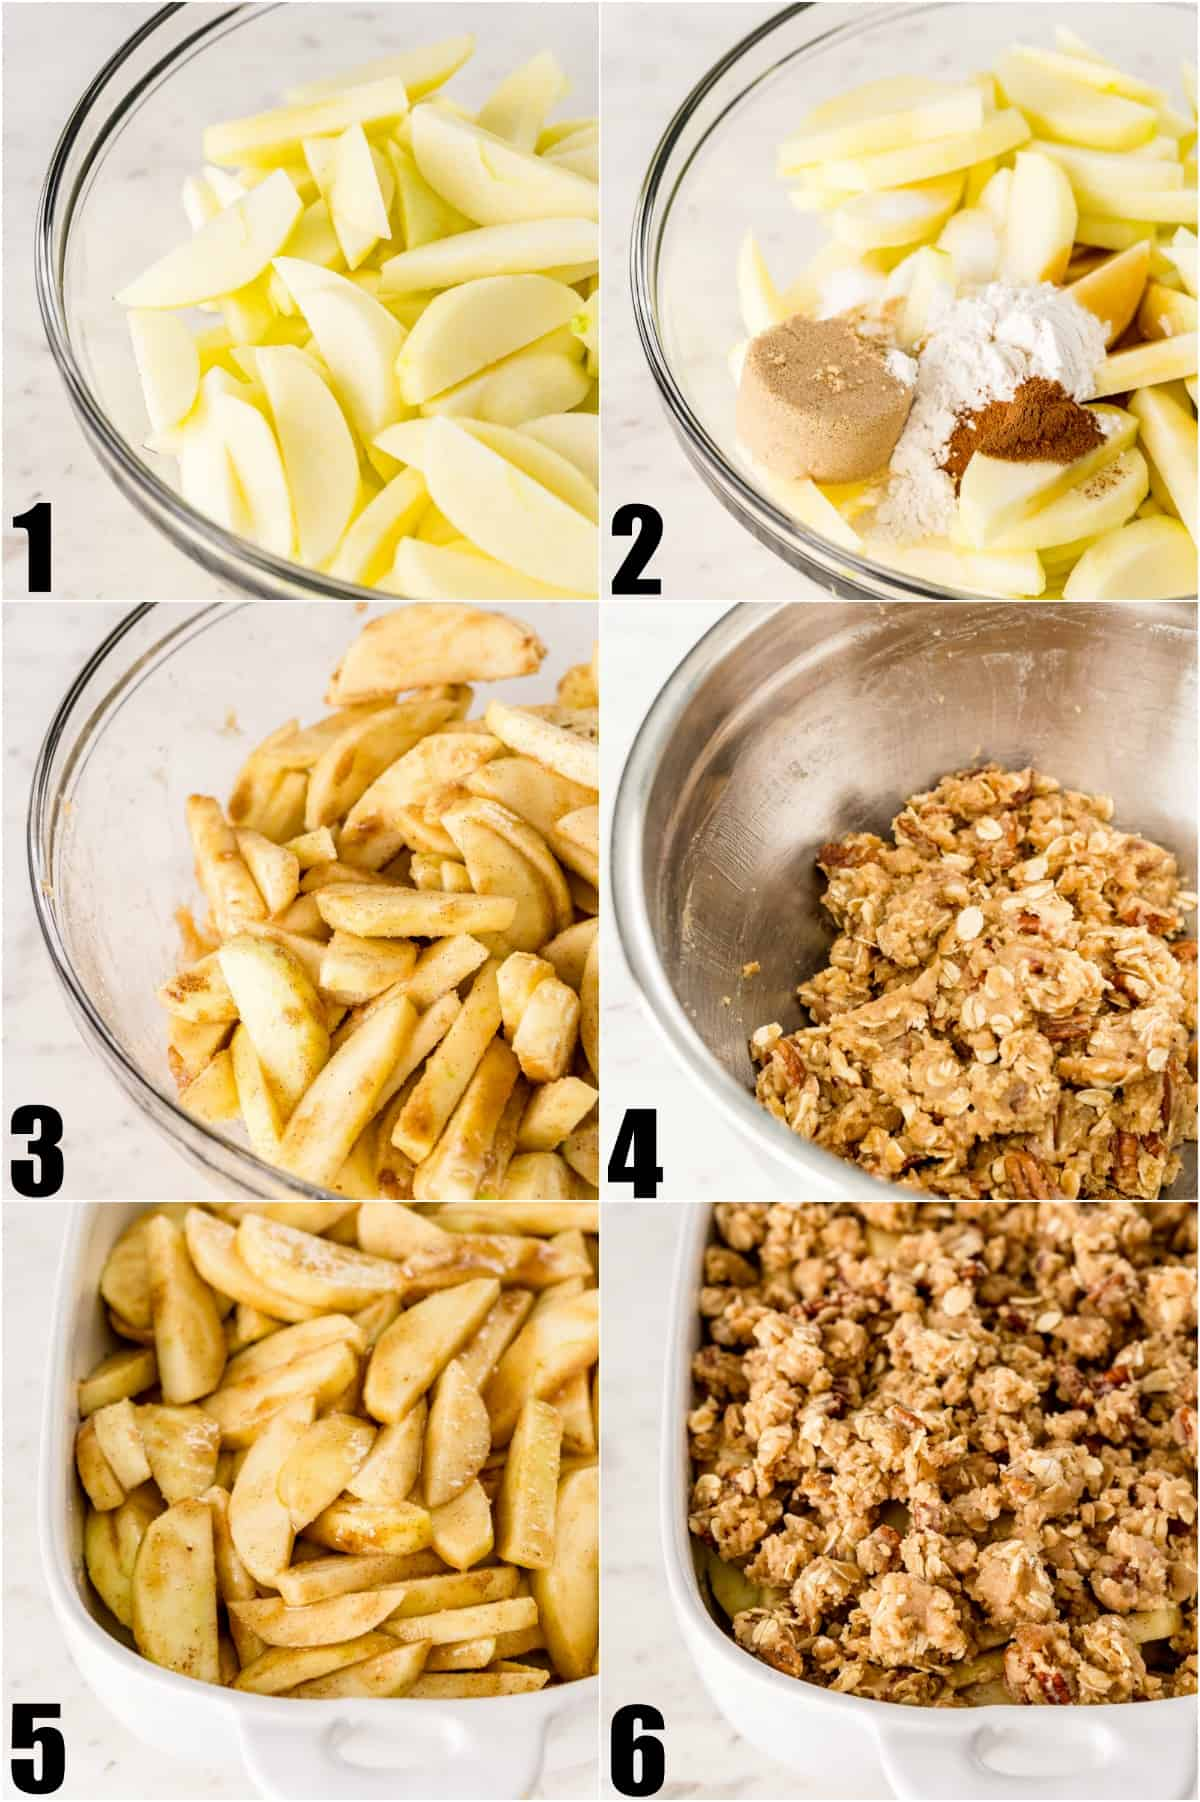 Step by step photos showing how to make apple crisp.